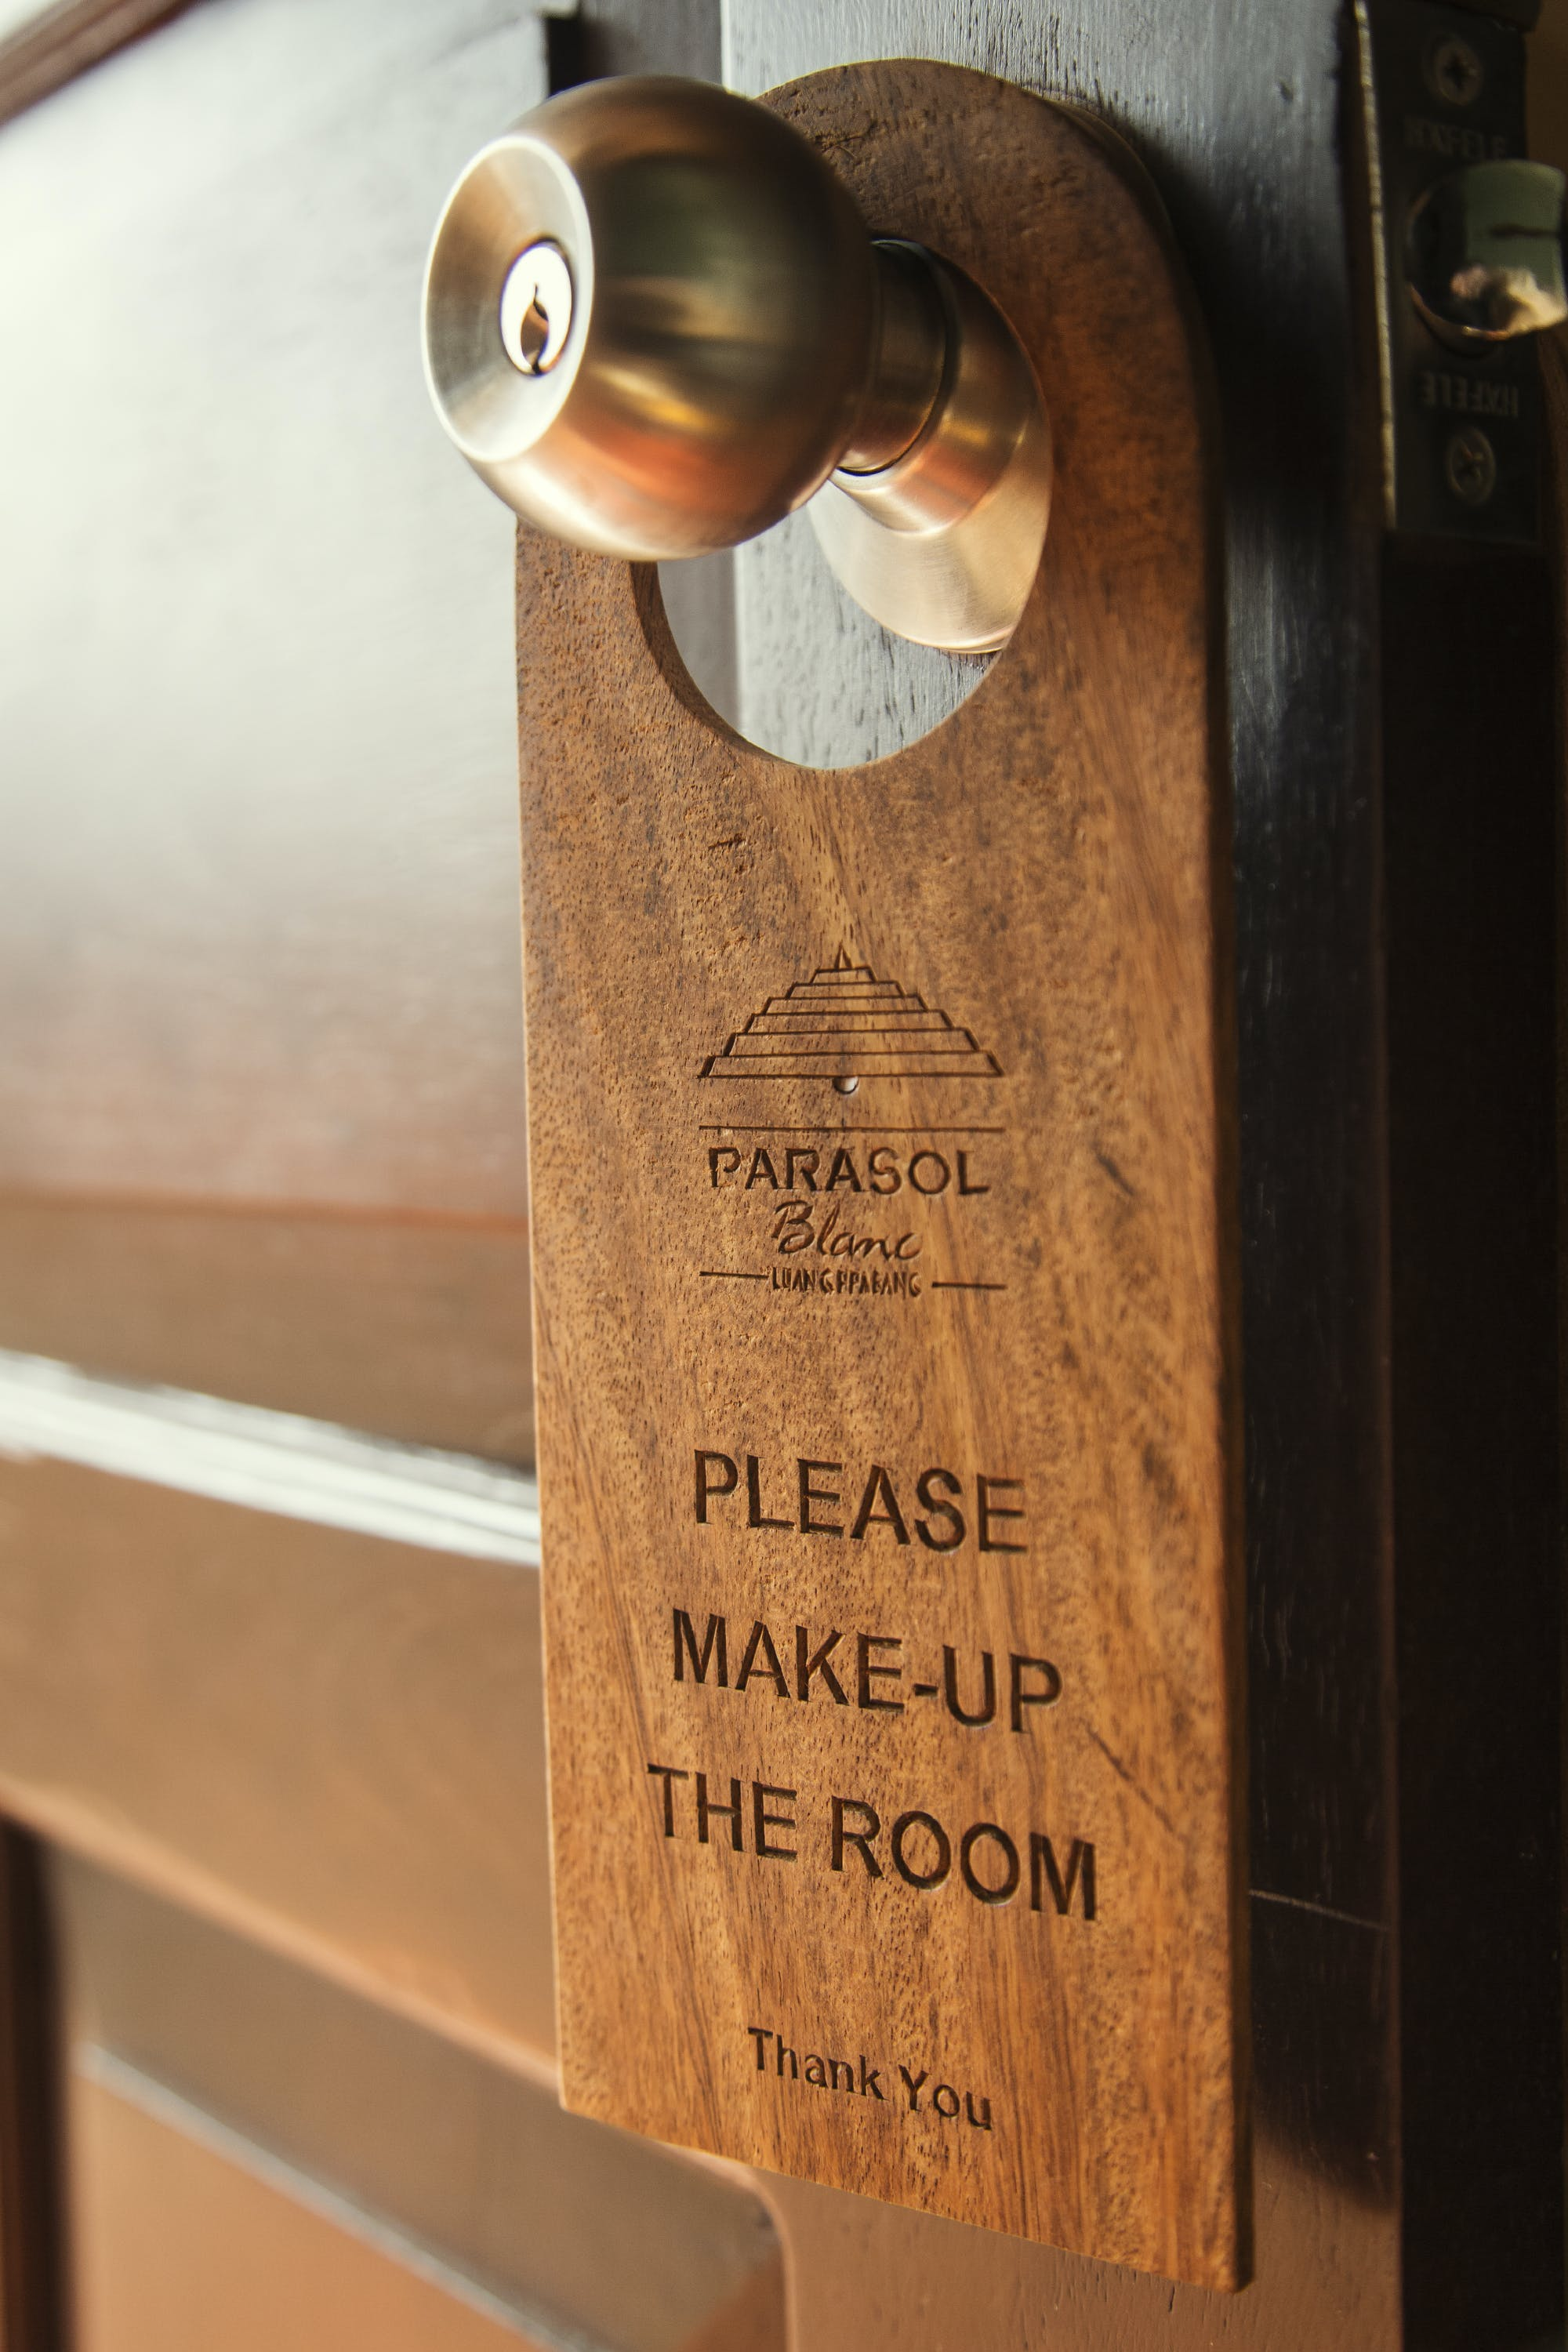 Parasol Blanc make up the room sign